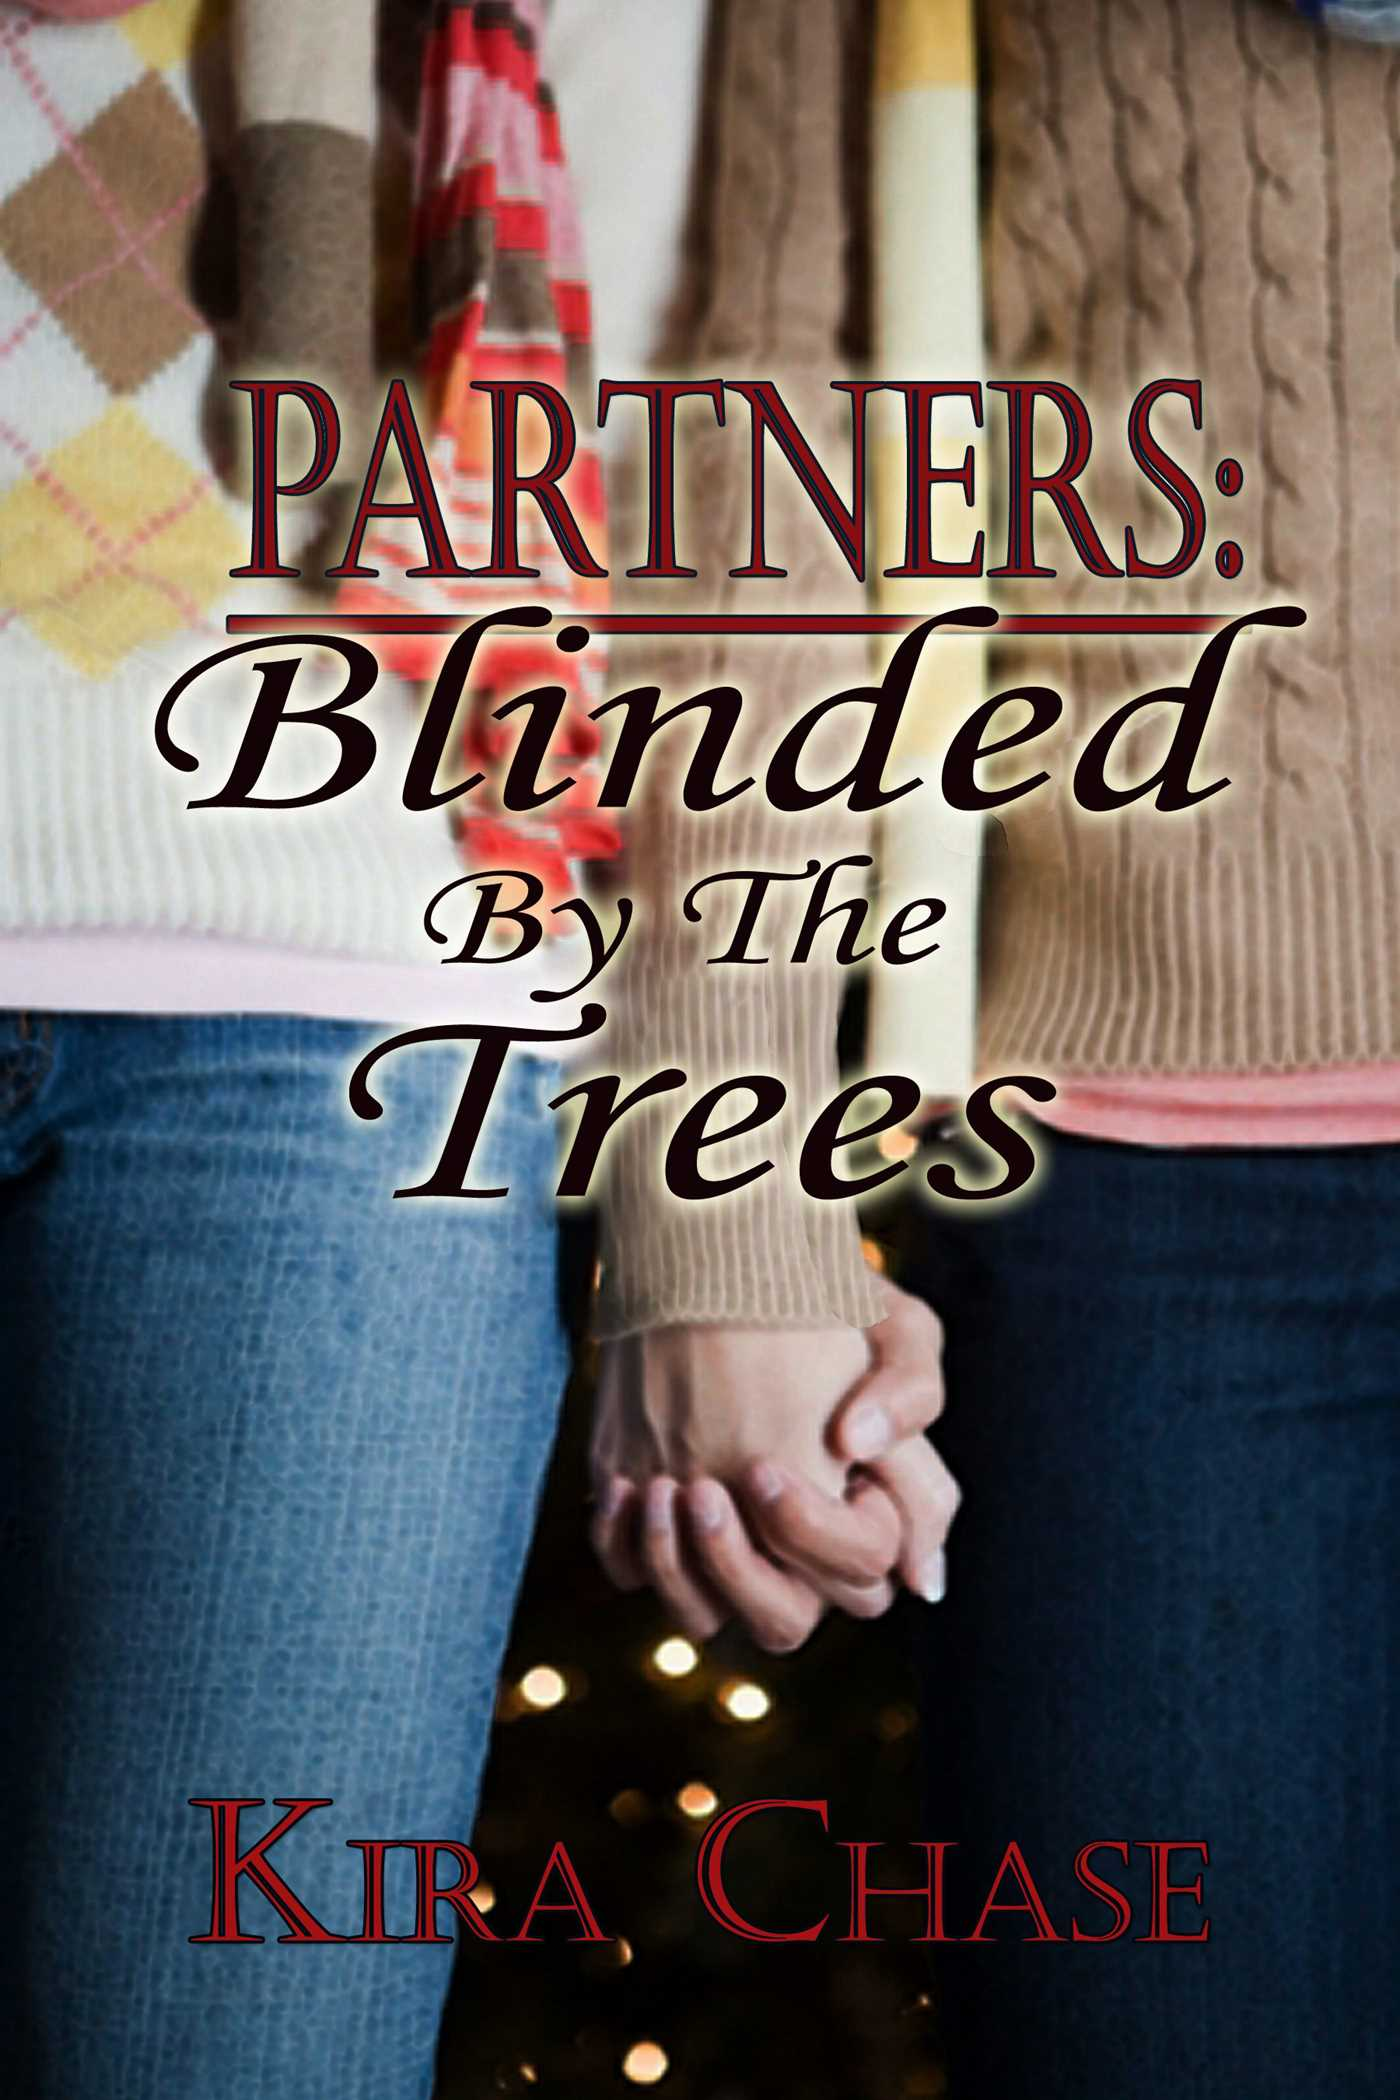 Blinded by the trees 9781611601534 hr